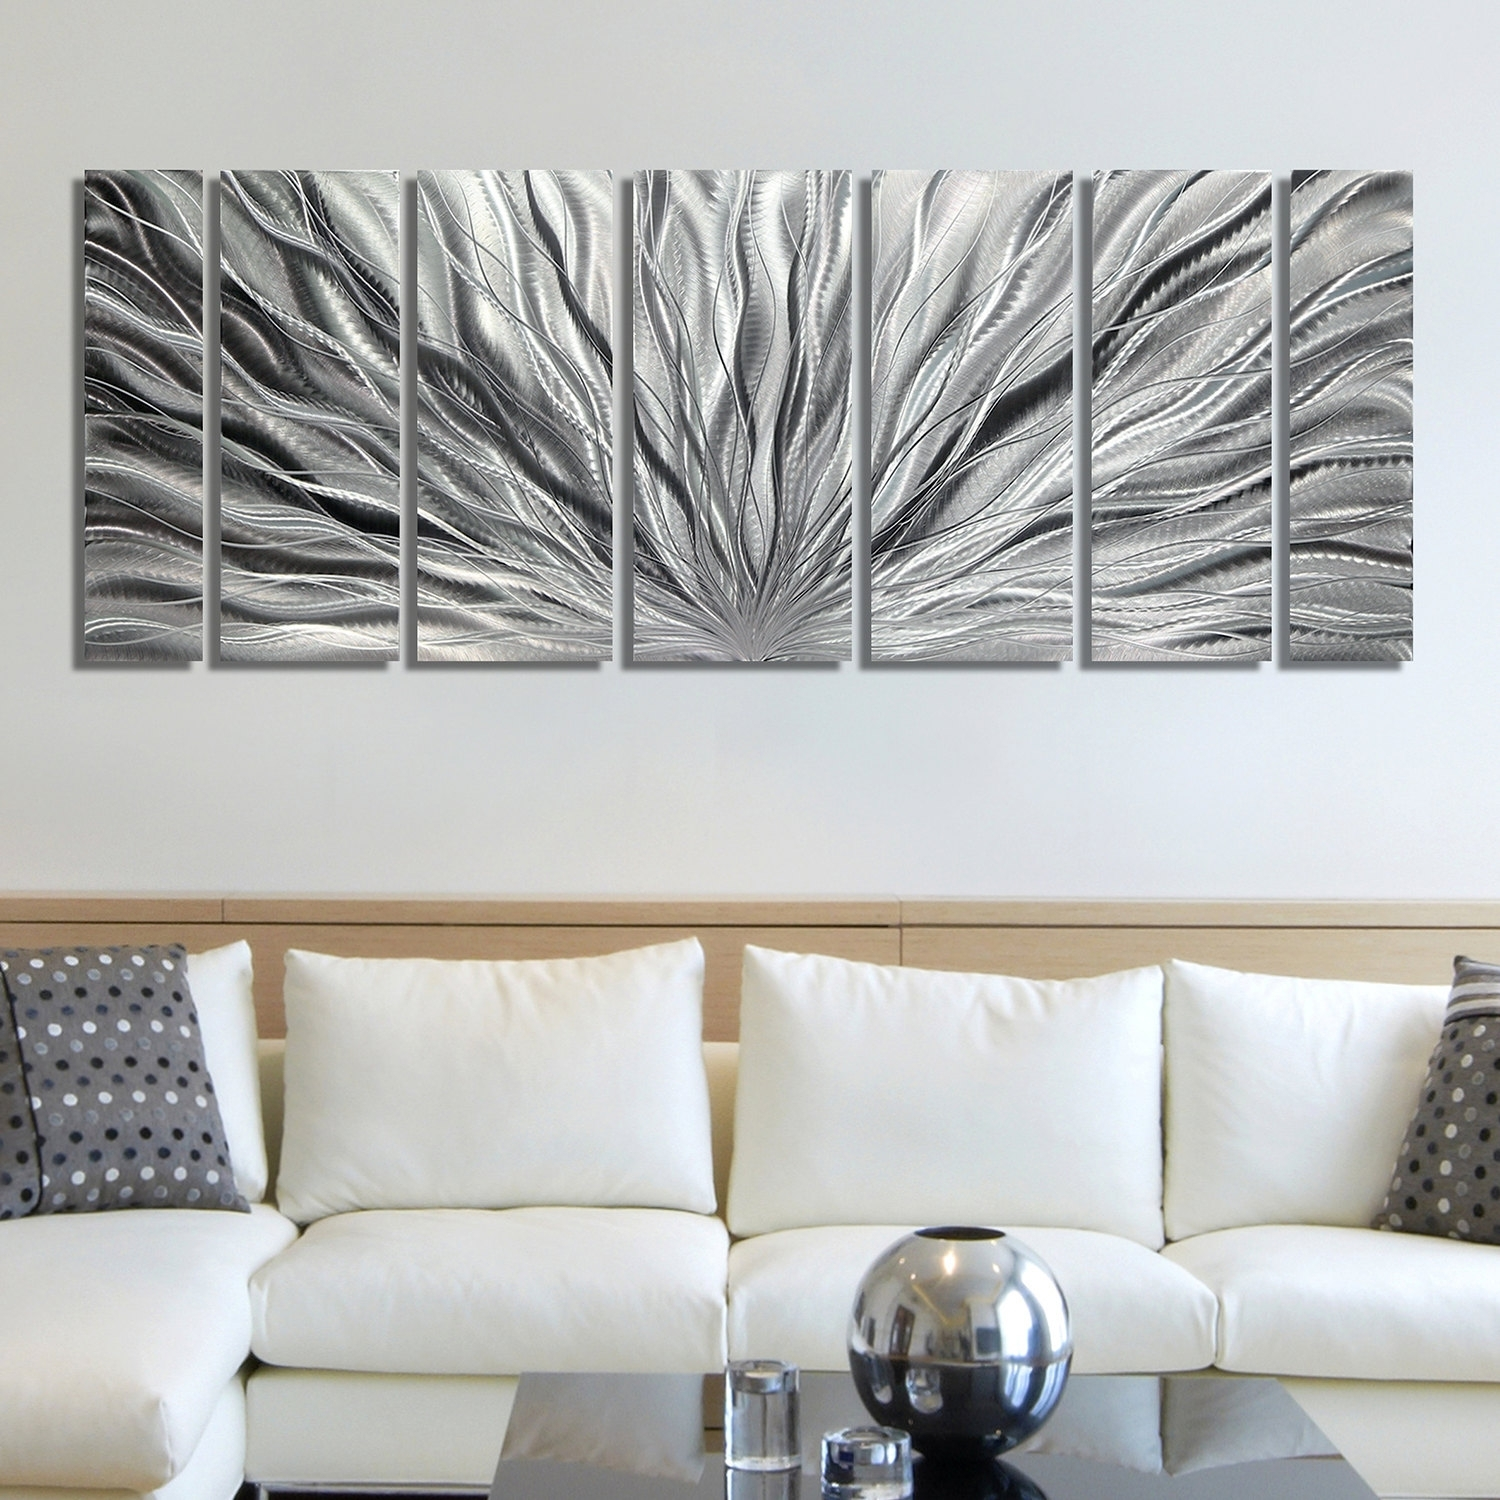 Silver Wall Art Cool Wall Decor On Sale – Wall Decoration And Wall In Most Current Silver Wall Art (View 17 of 20)